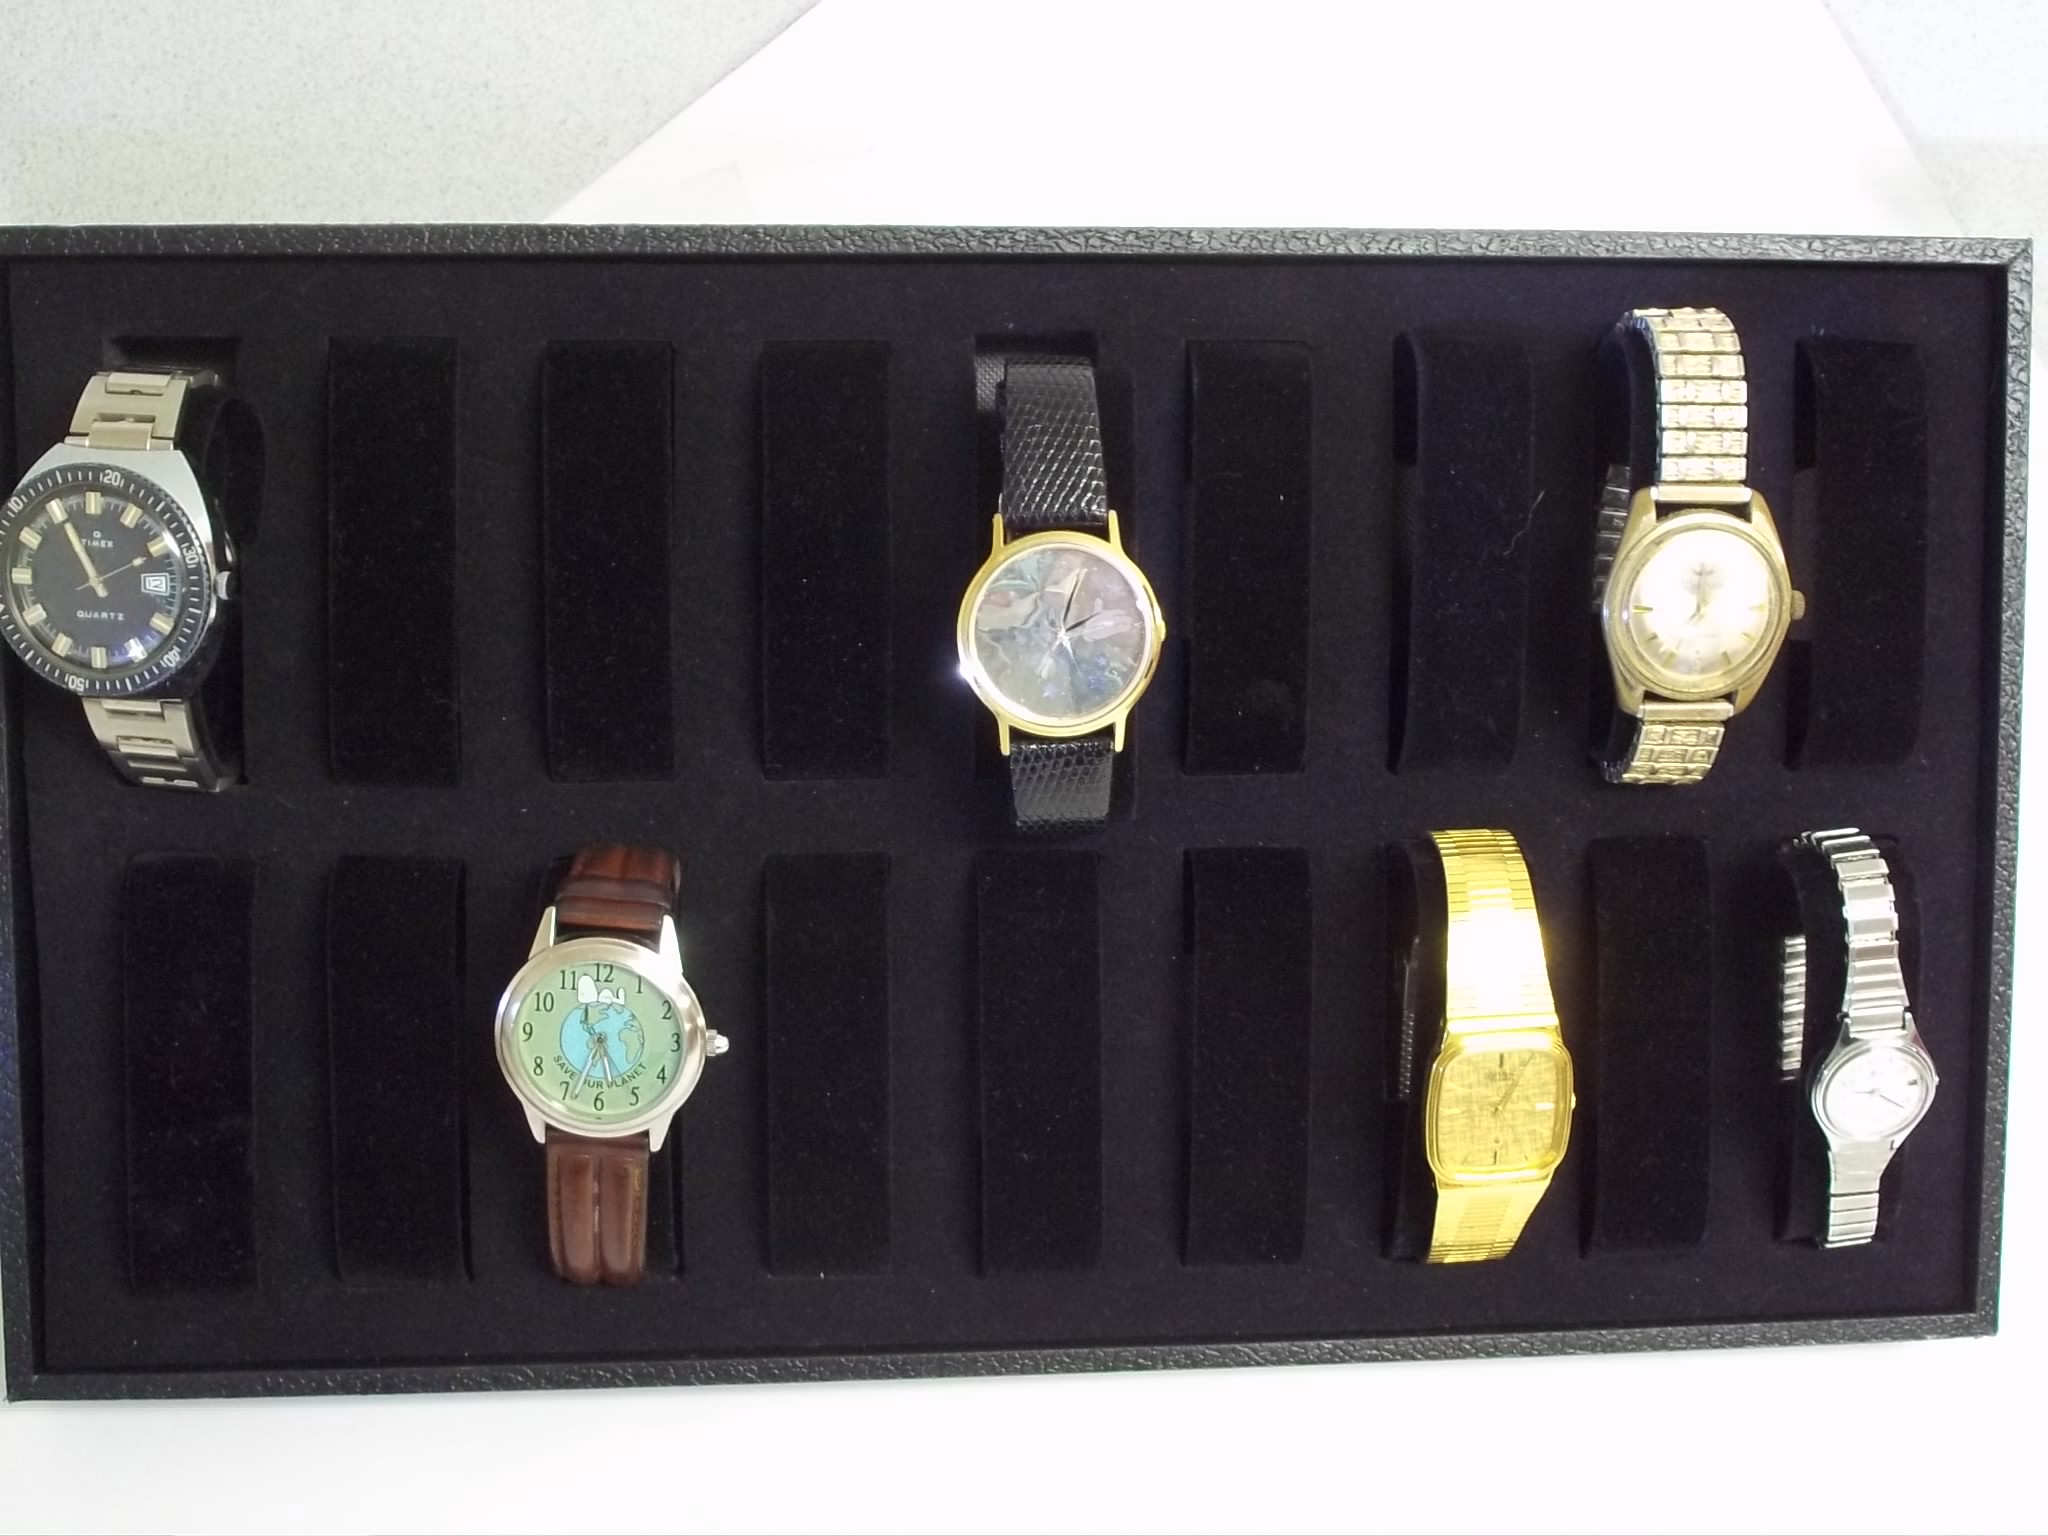 BVWT18 18 Slot Watch Display Tray